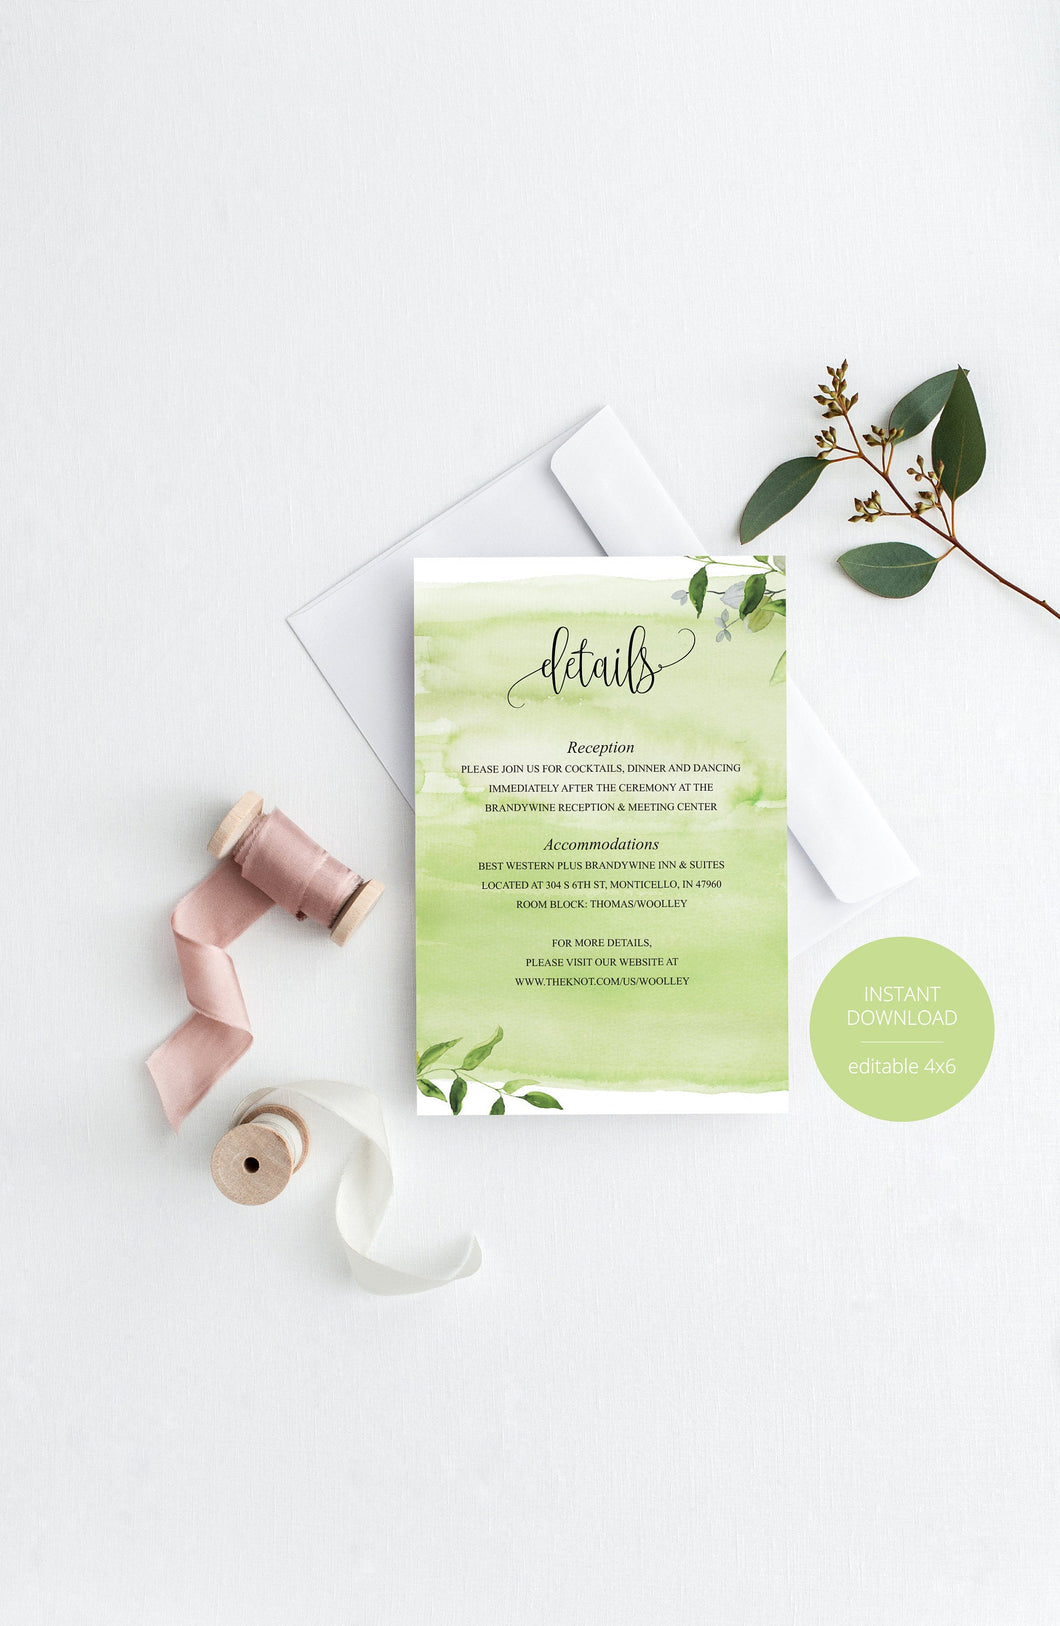 Wedding Details Card Template, Instant Download, Information Card,Wedding Info Card,Watercolor Wedding,Details Template, Greeneryl - MELISSA